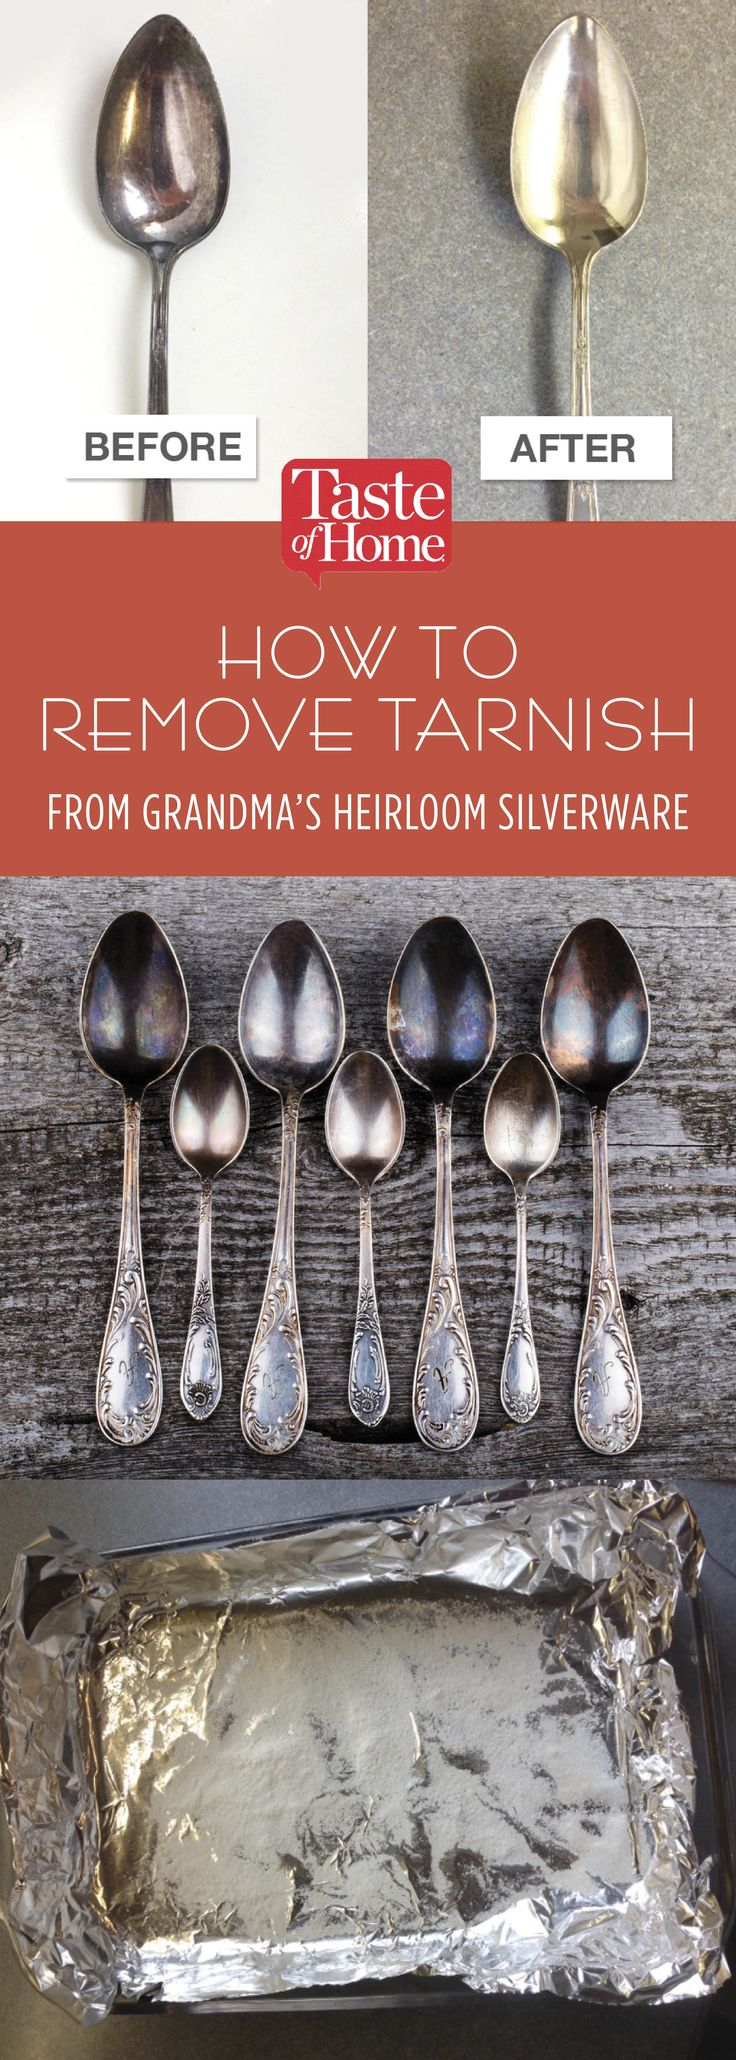 How to Remove Tarnish from Grandma's Heirloom Silverware